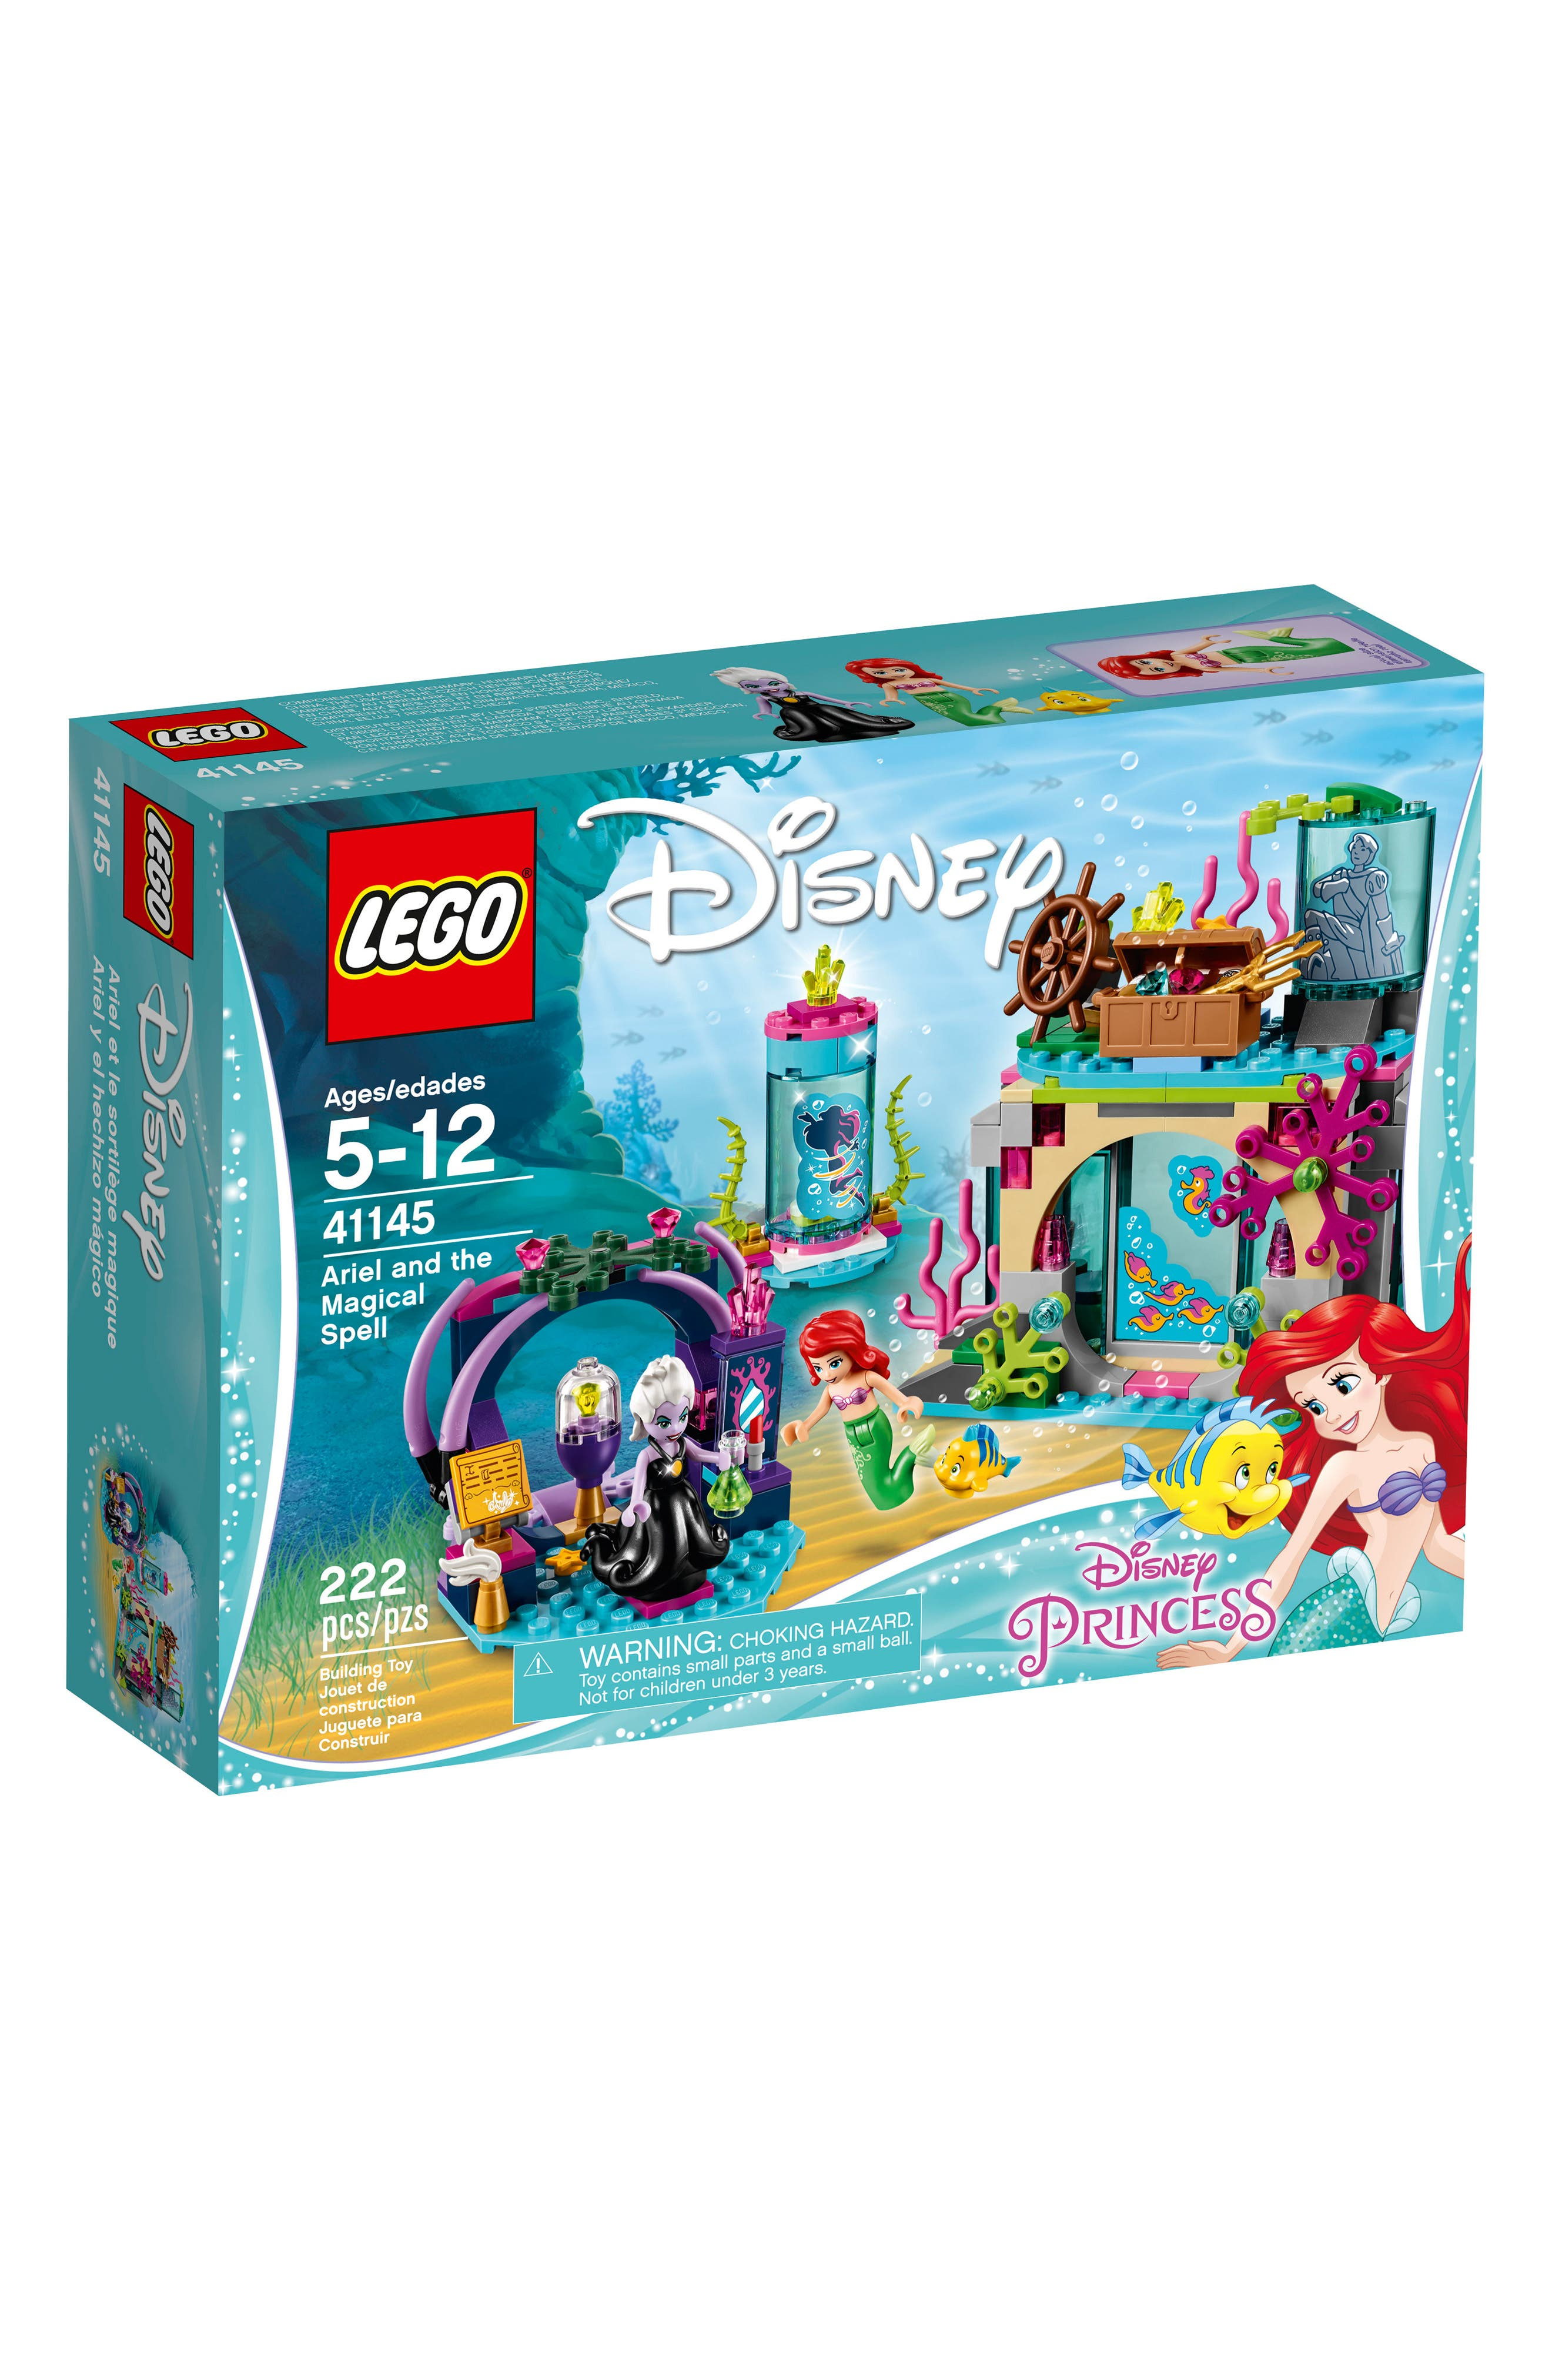 LEGO® Disney Princess™ Ariel and the Magical Spell Play Set - 41145